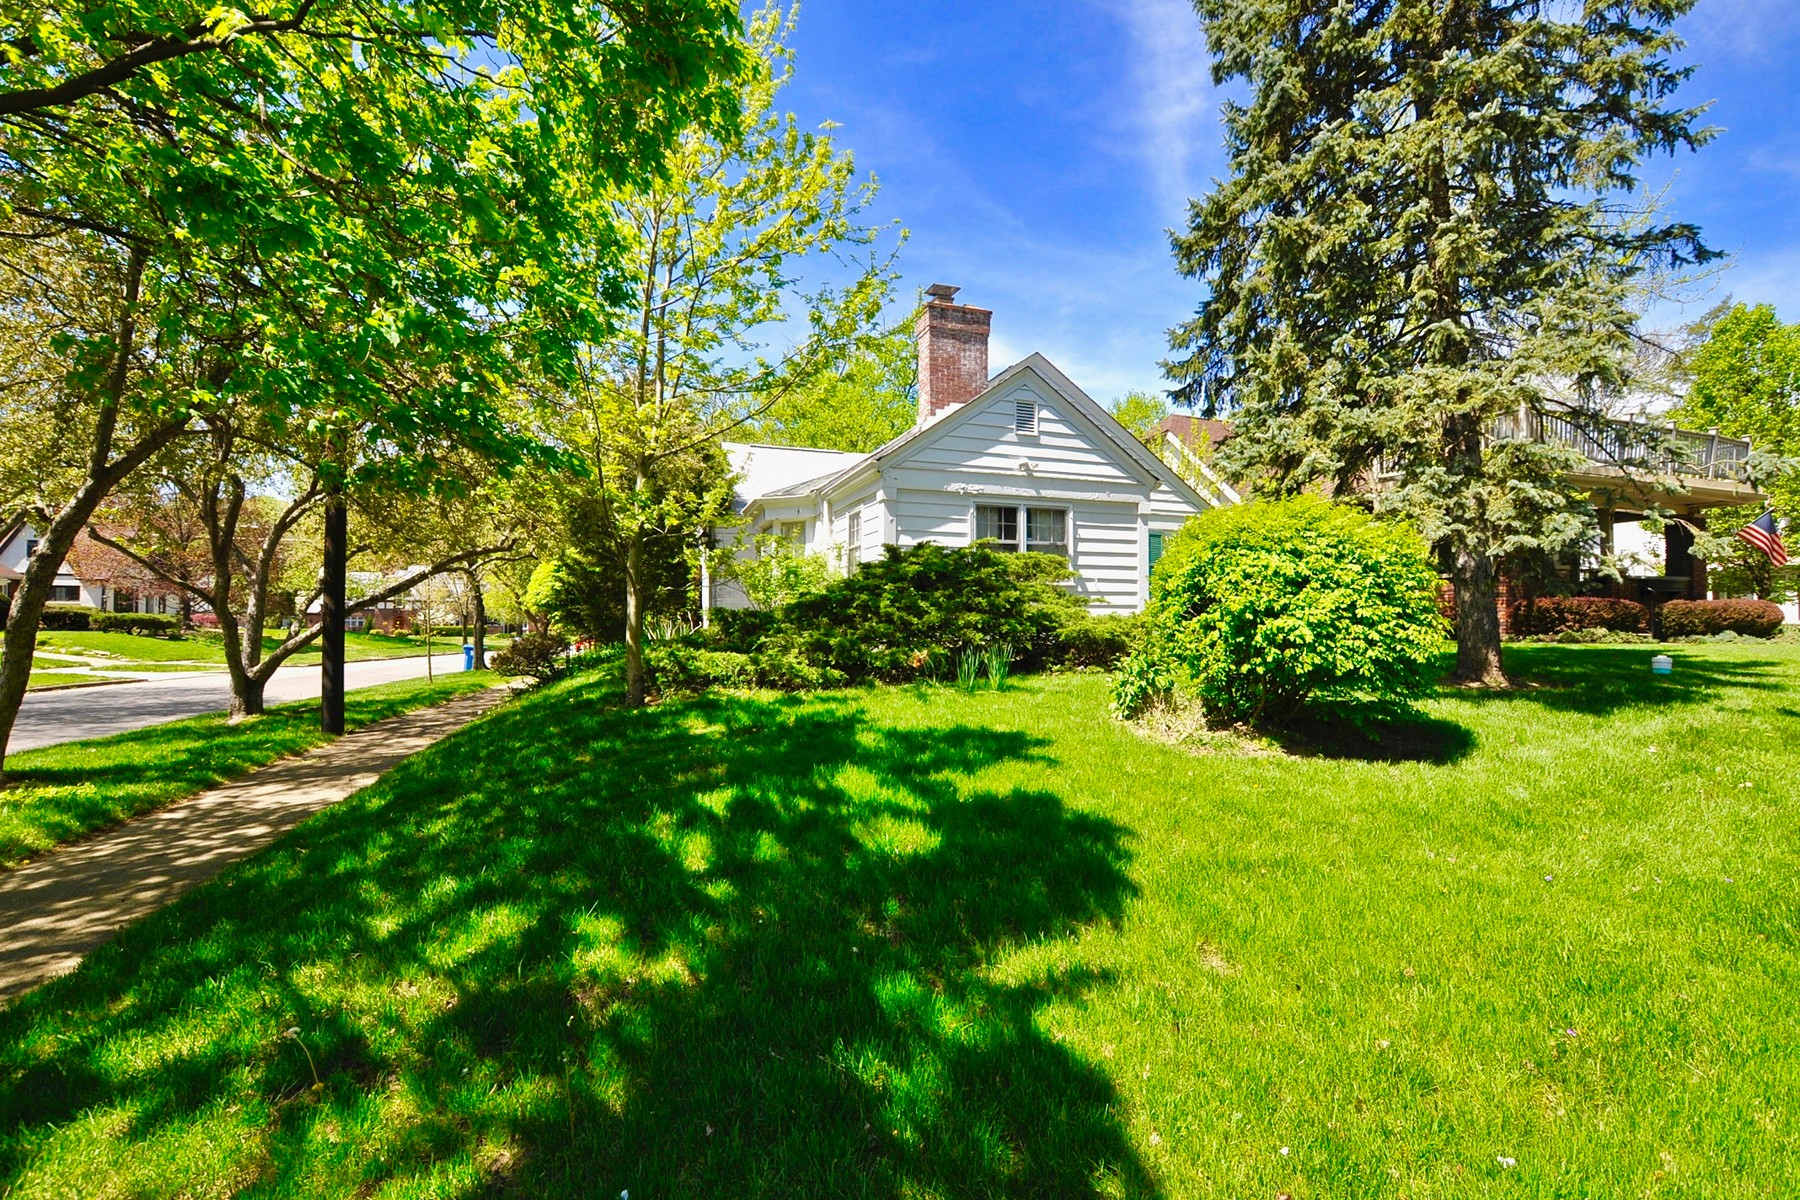 Single Family Home for Sale at Charming Broad Ripple Home 650 E 58th Street Indianapolis, Indiana 46220 United States